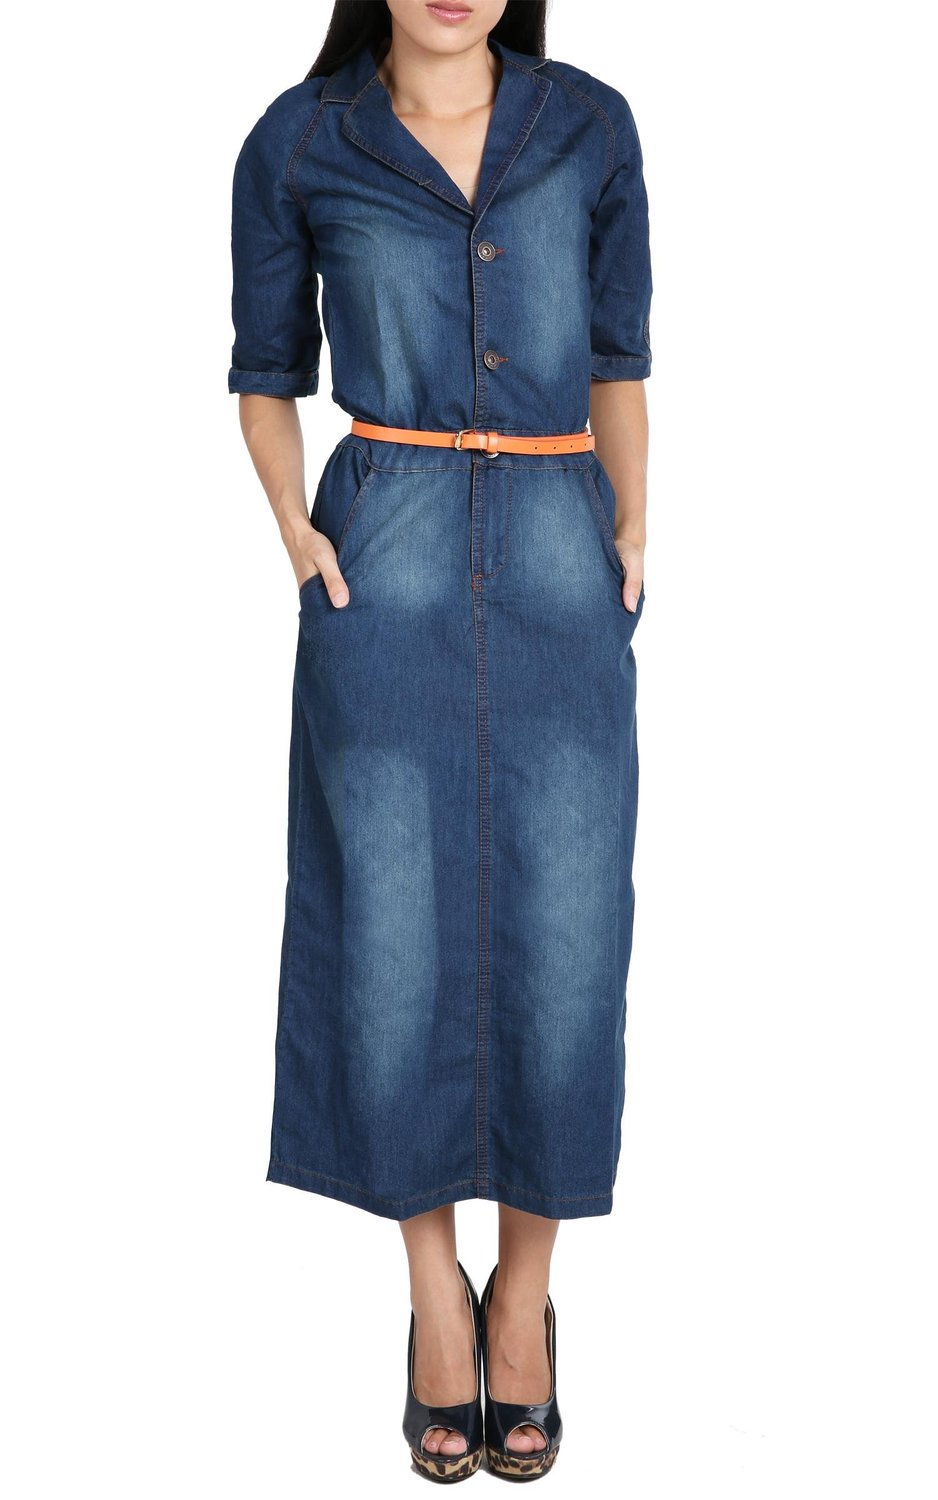 FINEJO® Europe Style Women Fit Slim Thin Denim Blue Jean Slit Long Maxi Dress at Amazon Women's Clothing store: